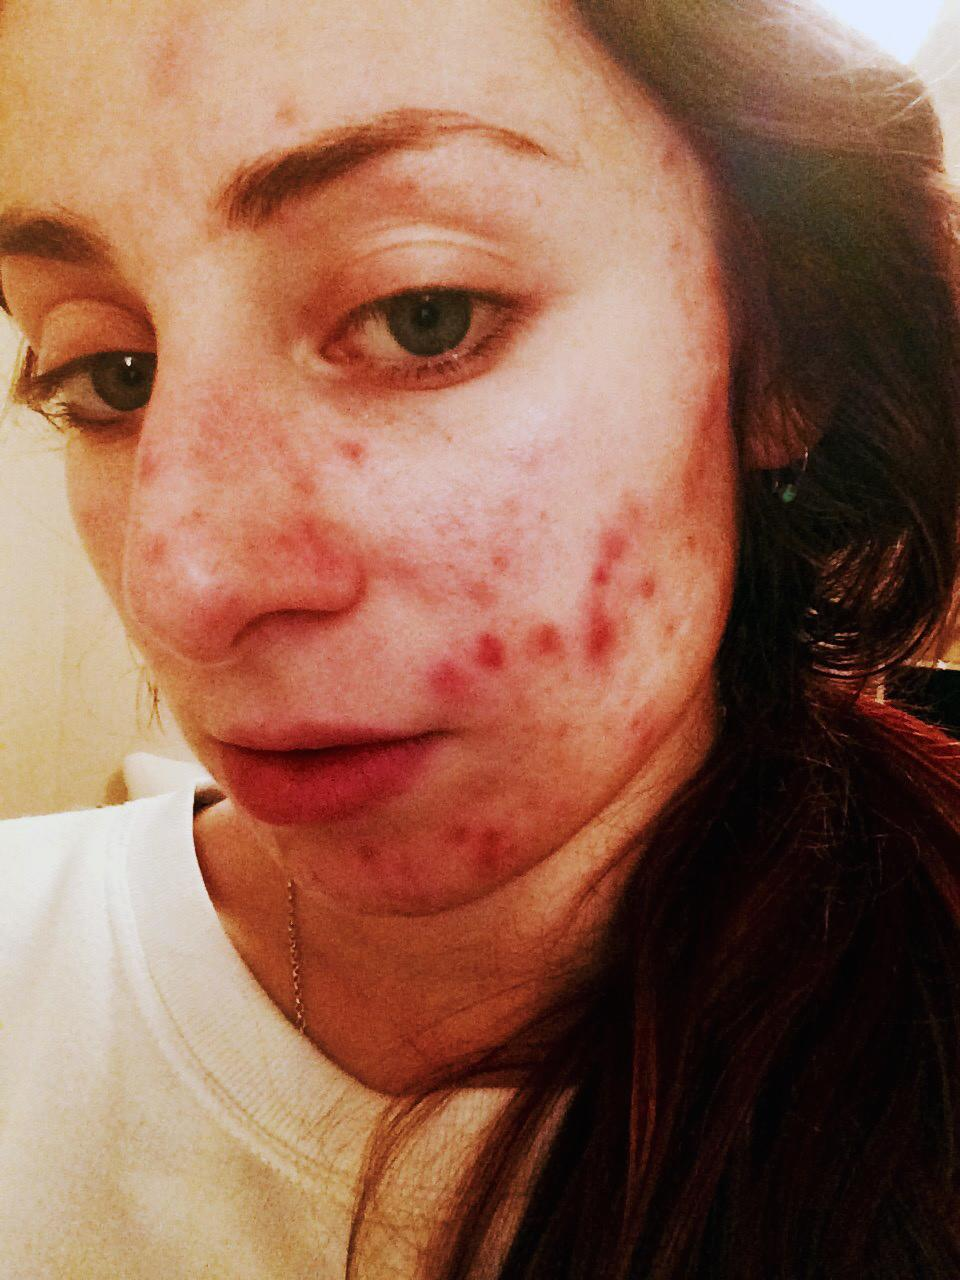 Sex girl with acne